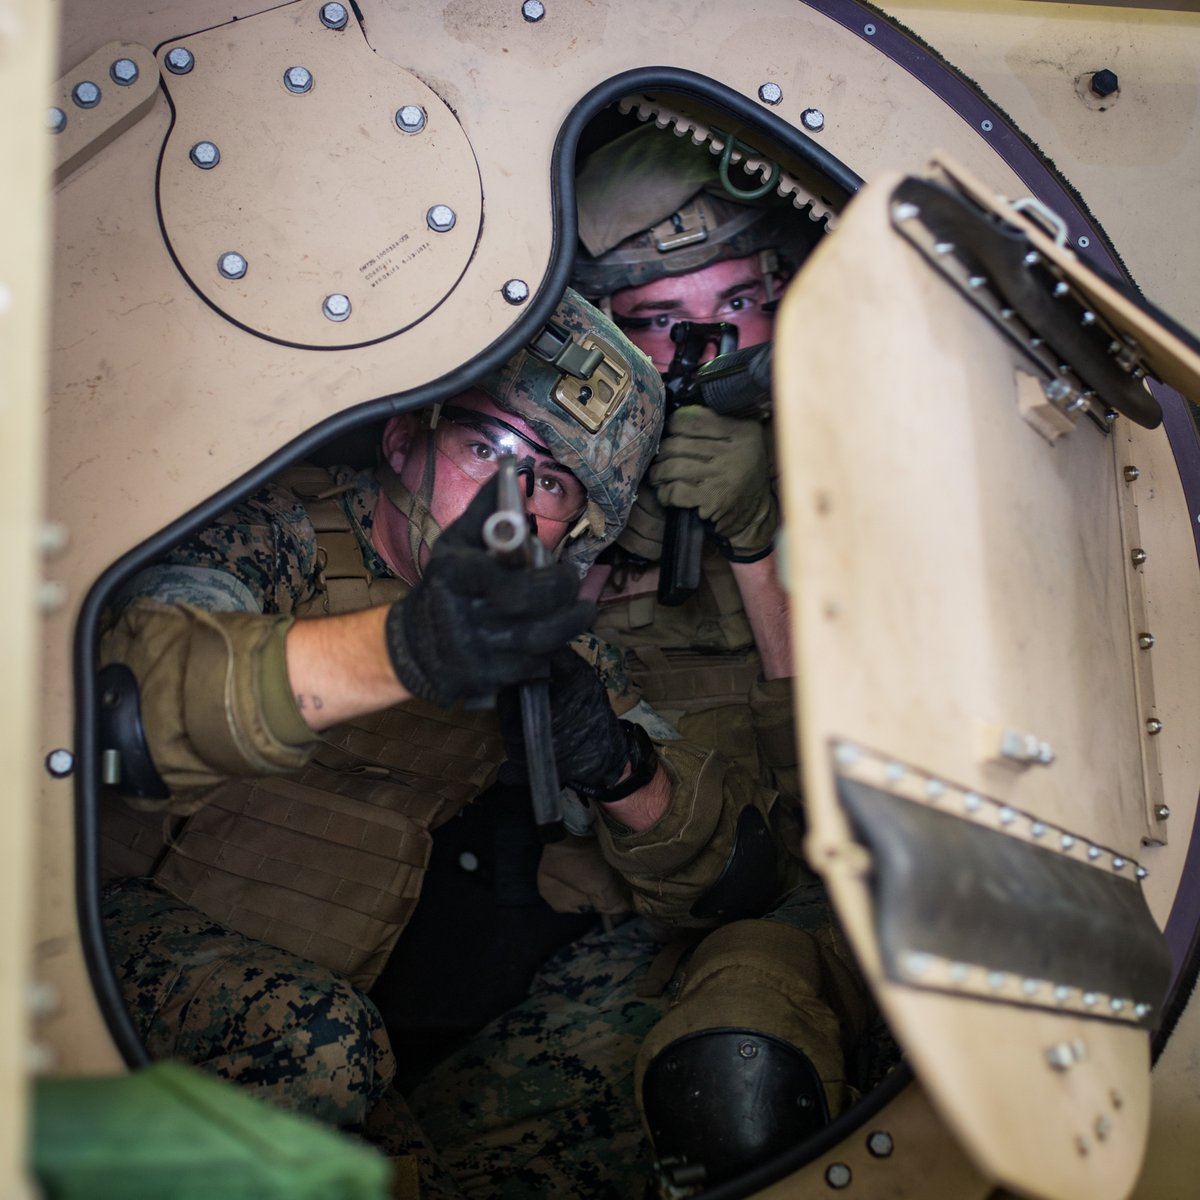 Marines with @31stMeu learned how to escape a Joint Light Tactical Vehicle to be ready for any potential outcome during a convoy. This training prepared the Marines to remain flexible and be ready to #fightnow https://t.co/lcbyFqwxDn